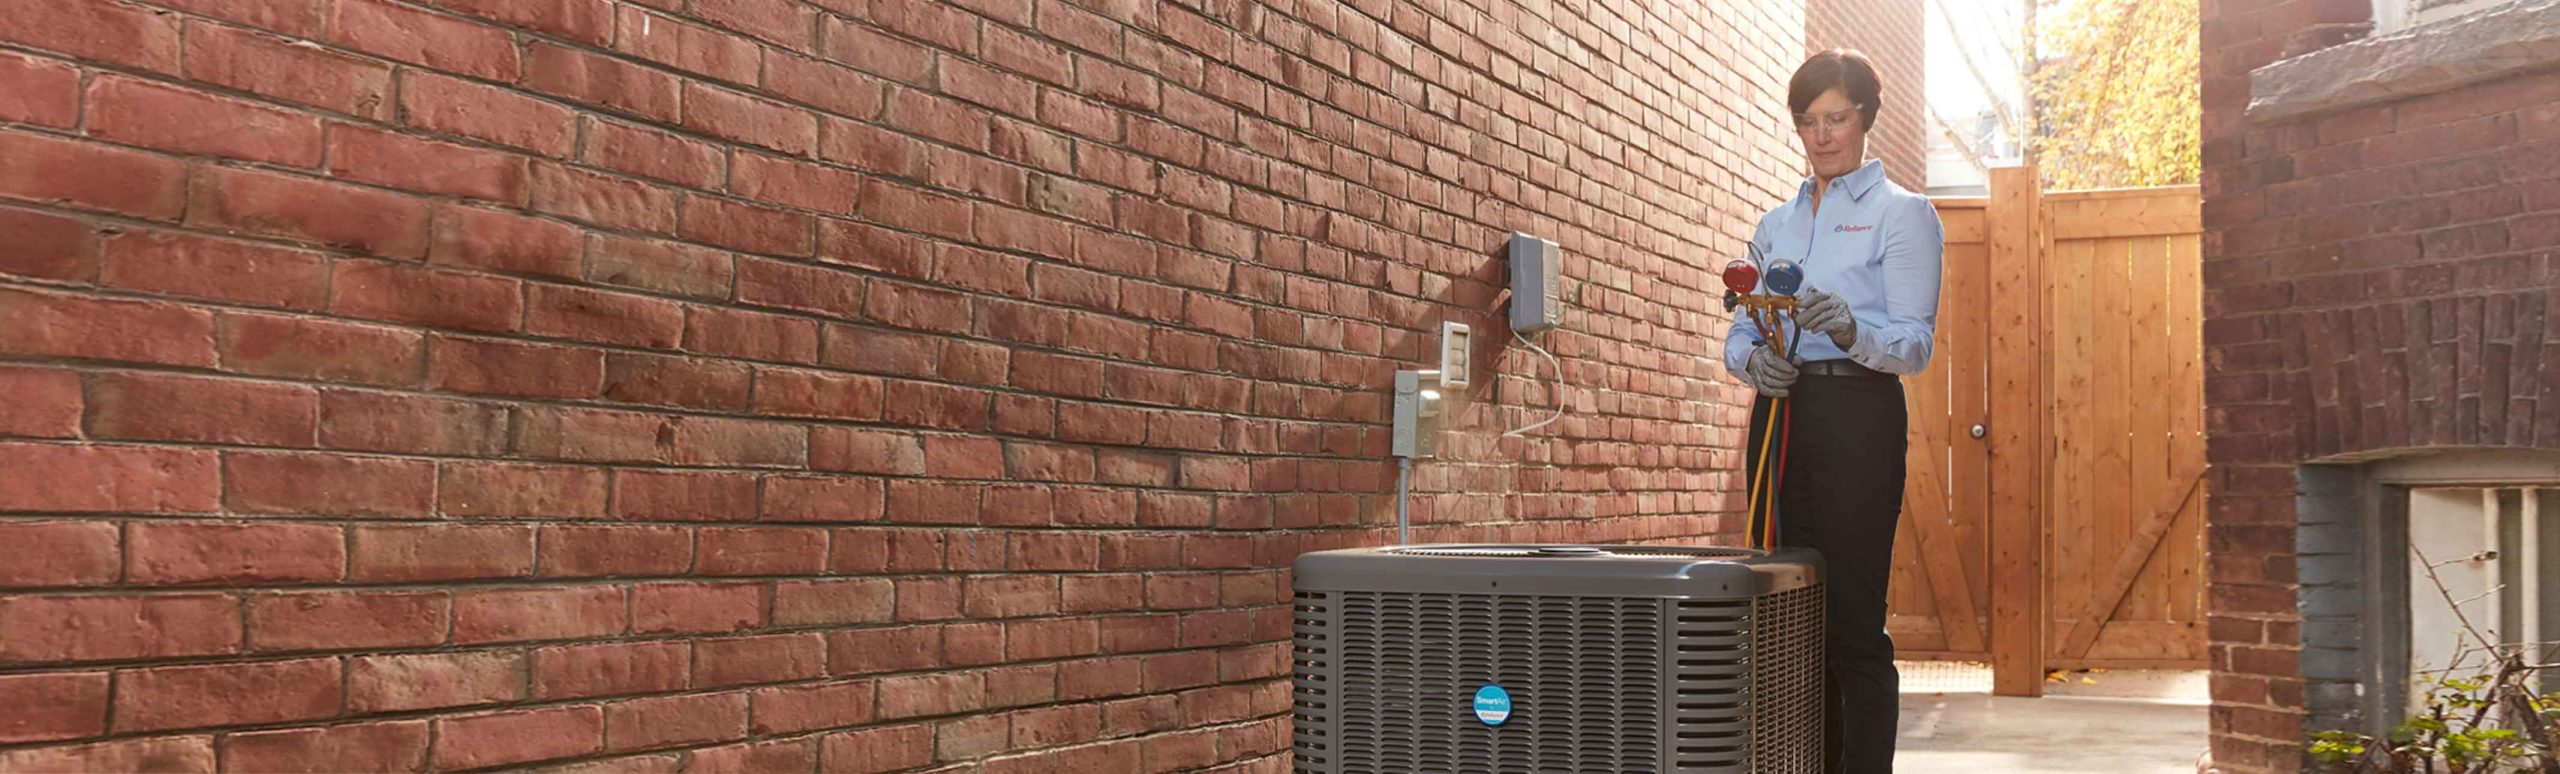 Upgrade your air conditioner